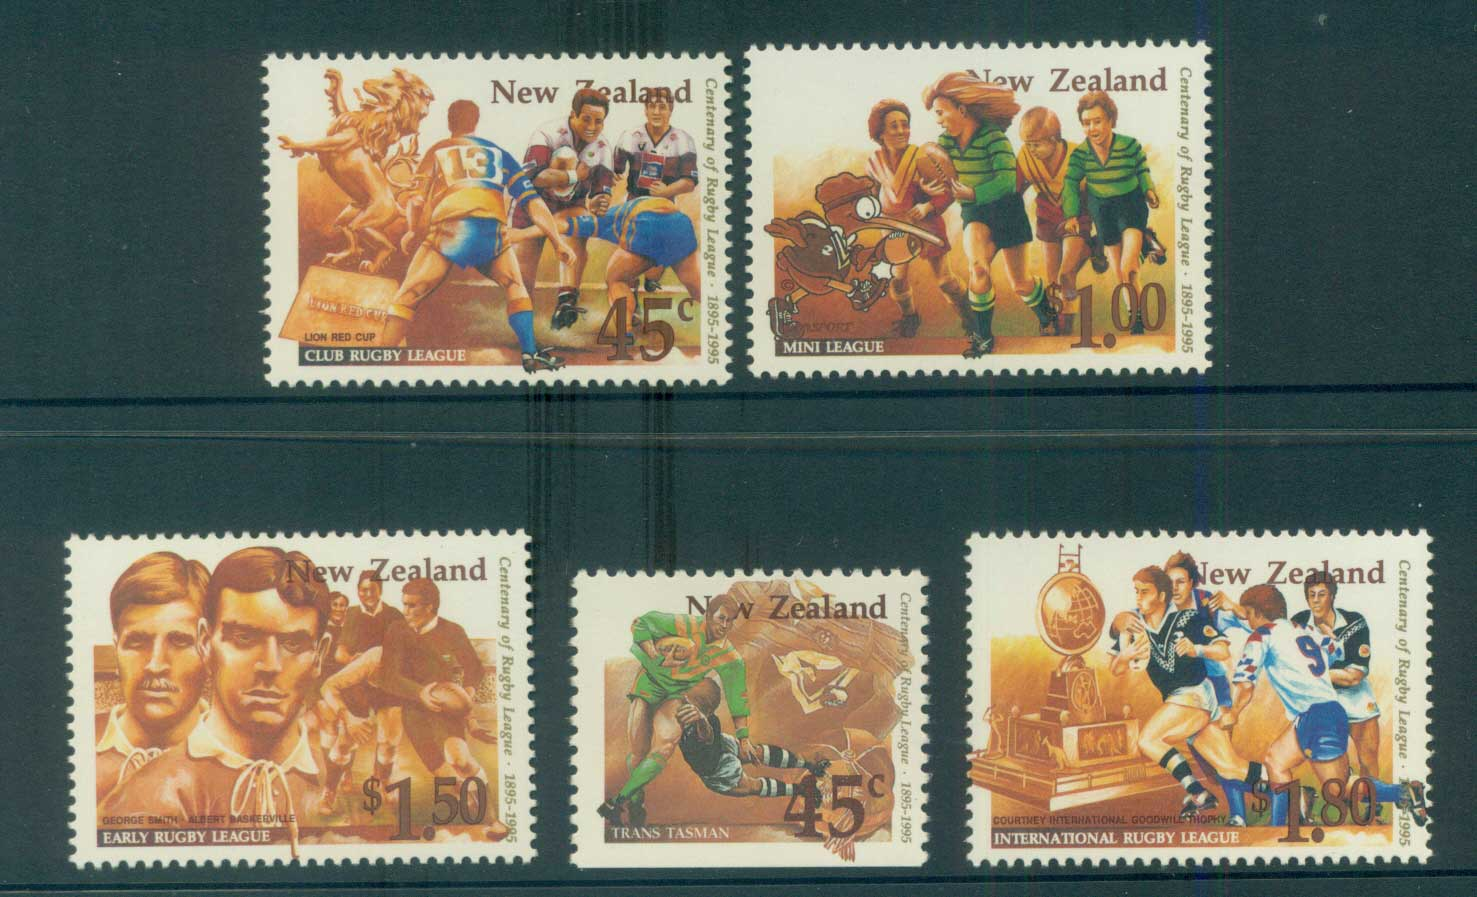 New Zealand 1995 Rugby League cent + booklet stamp MUH lot53199